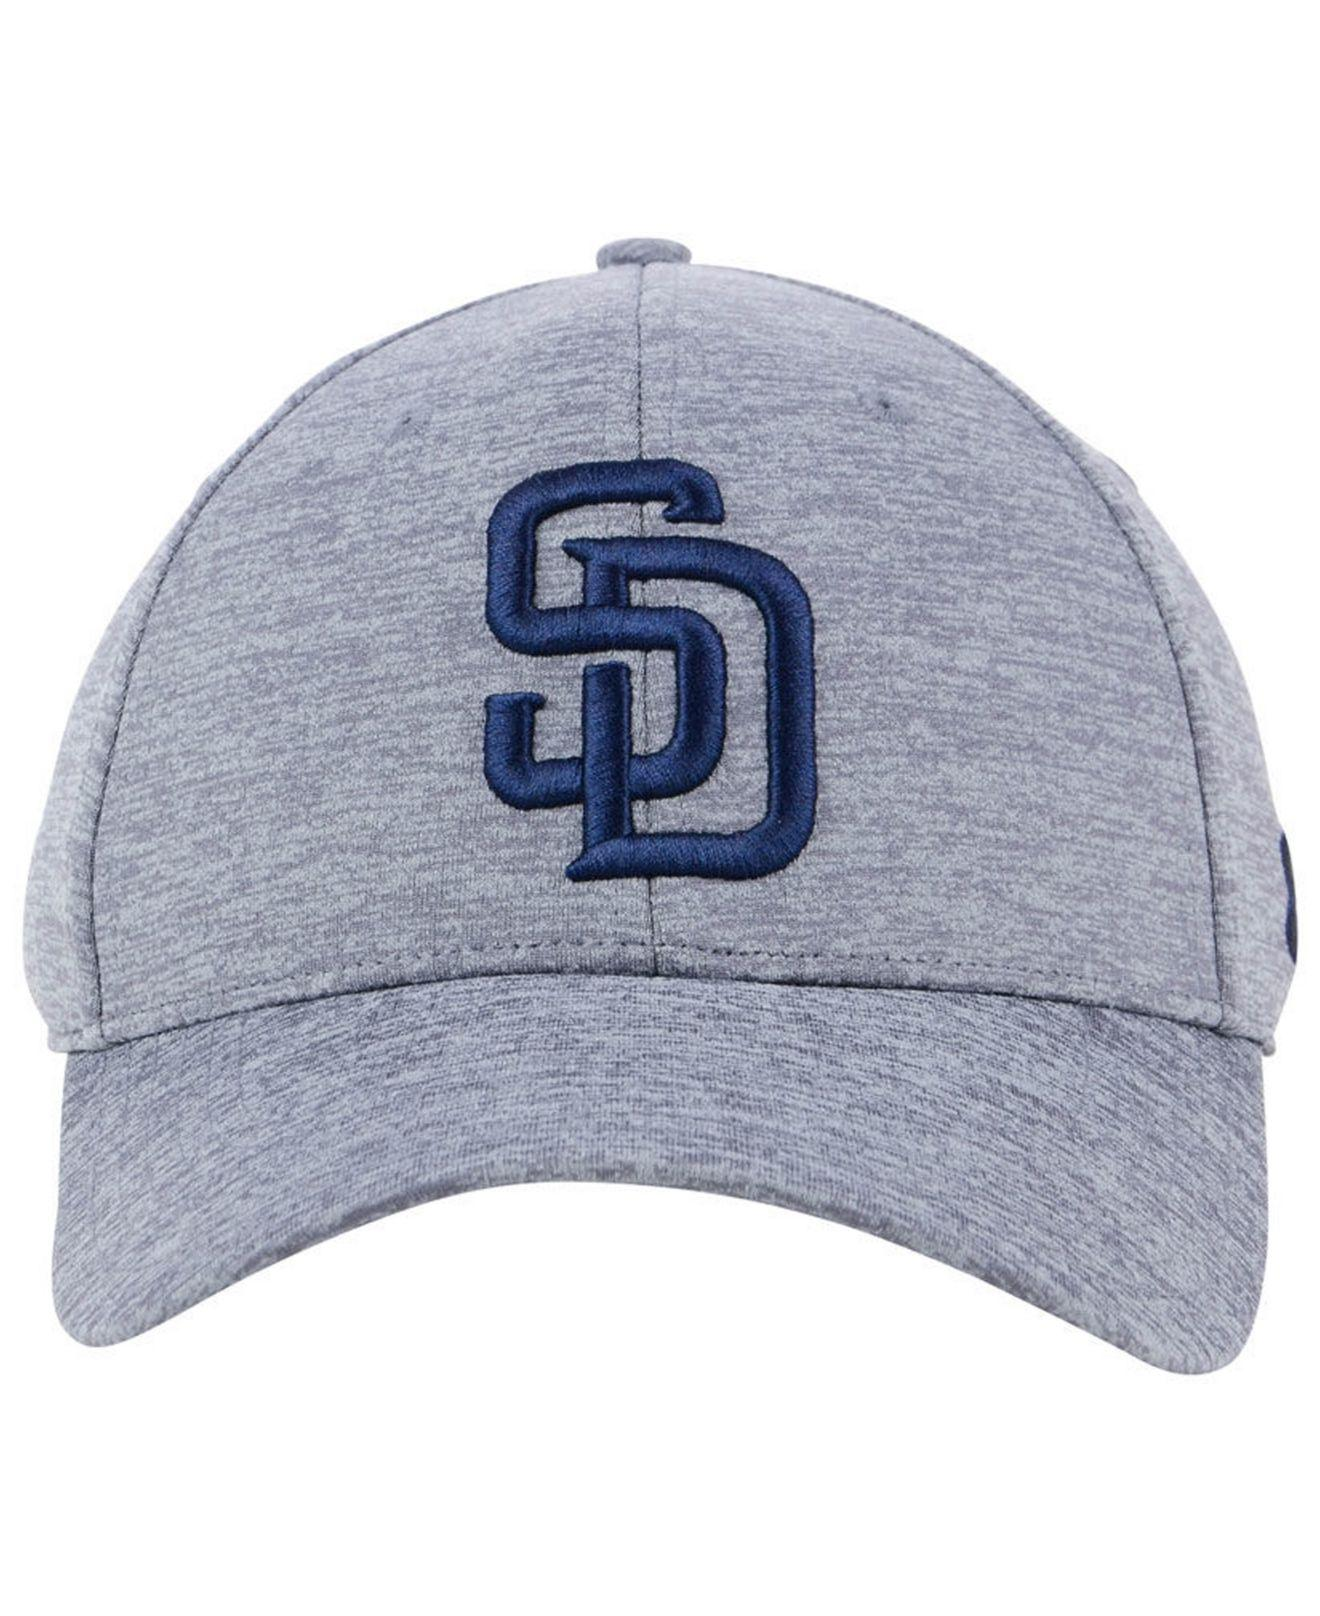 370b1fef1 germany san diego padres franchise hat worth 3ae38 f22d2